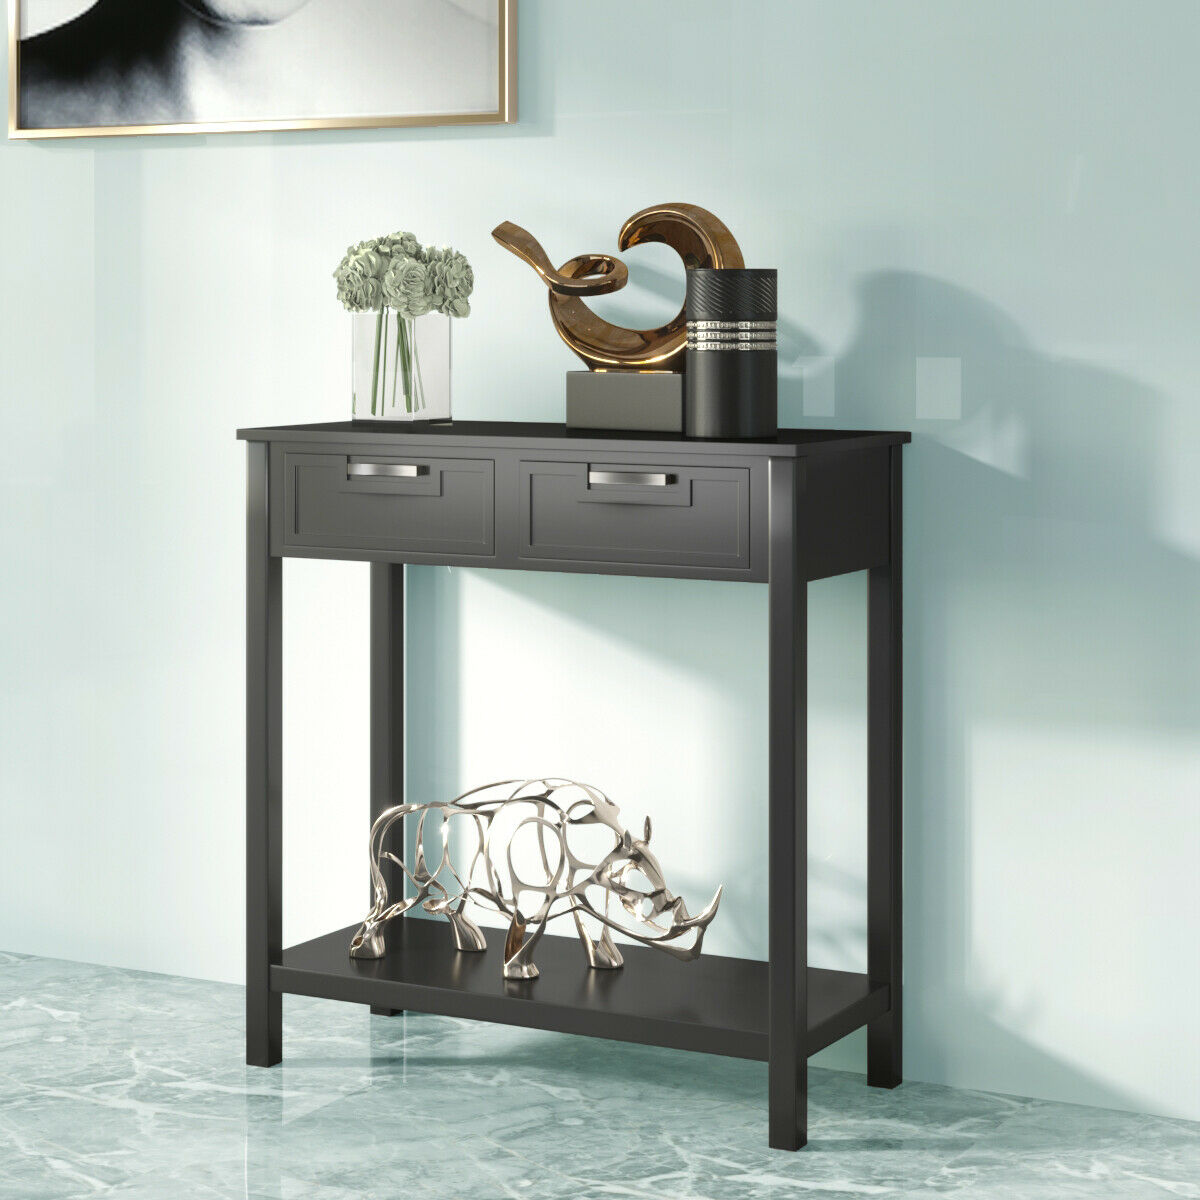 - Gymax Accent Console Table Entryway Sofa Foyer Table Storage Shelf